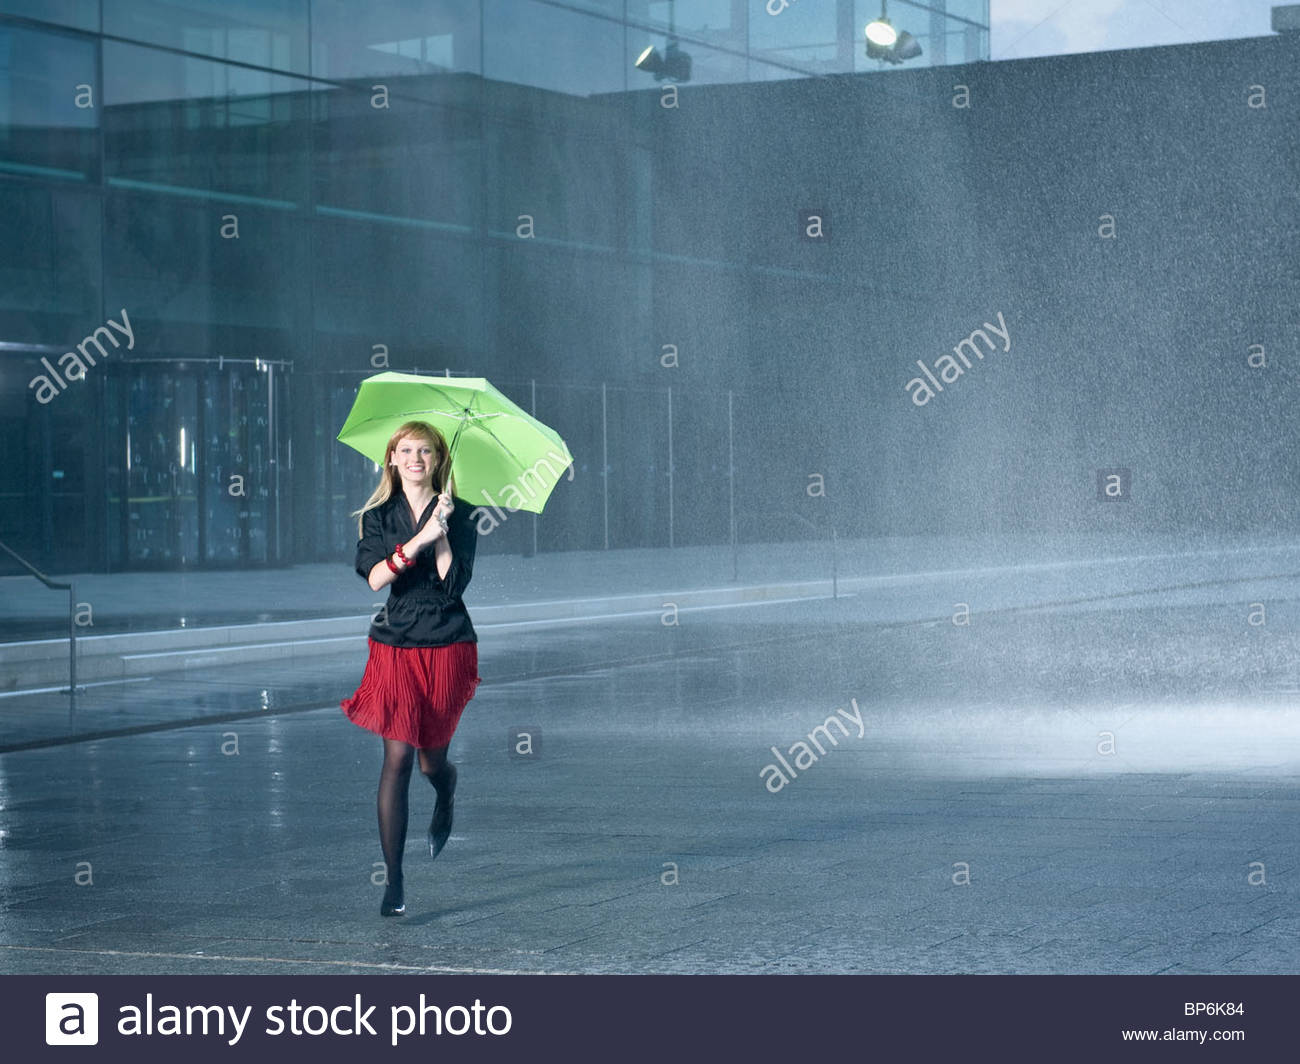 A young woman holding a green umbrella in the rain - Stock Image